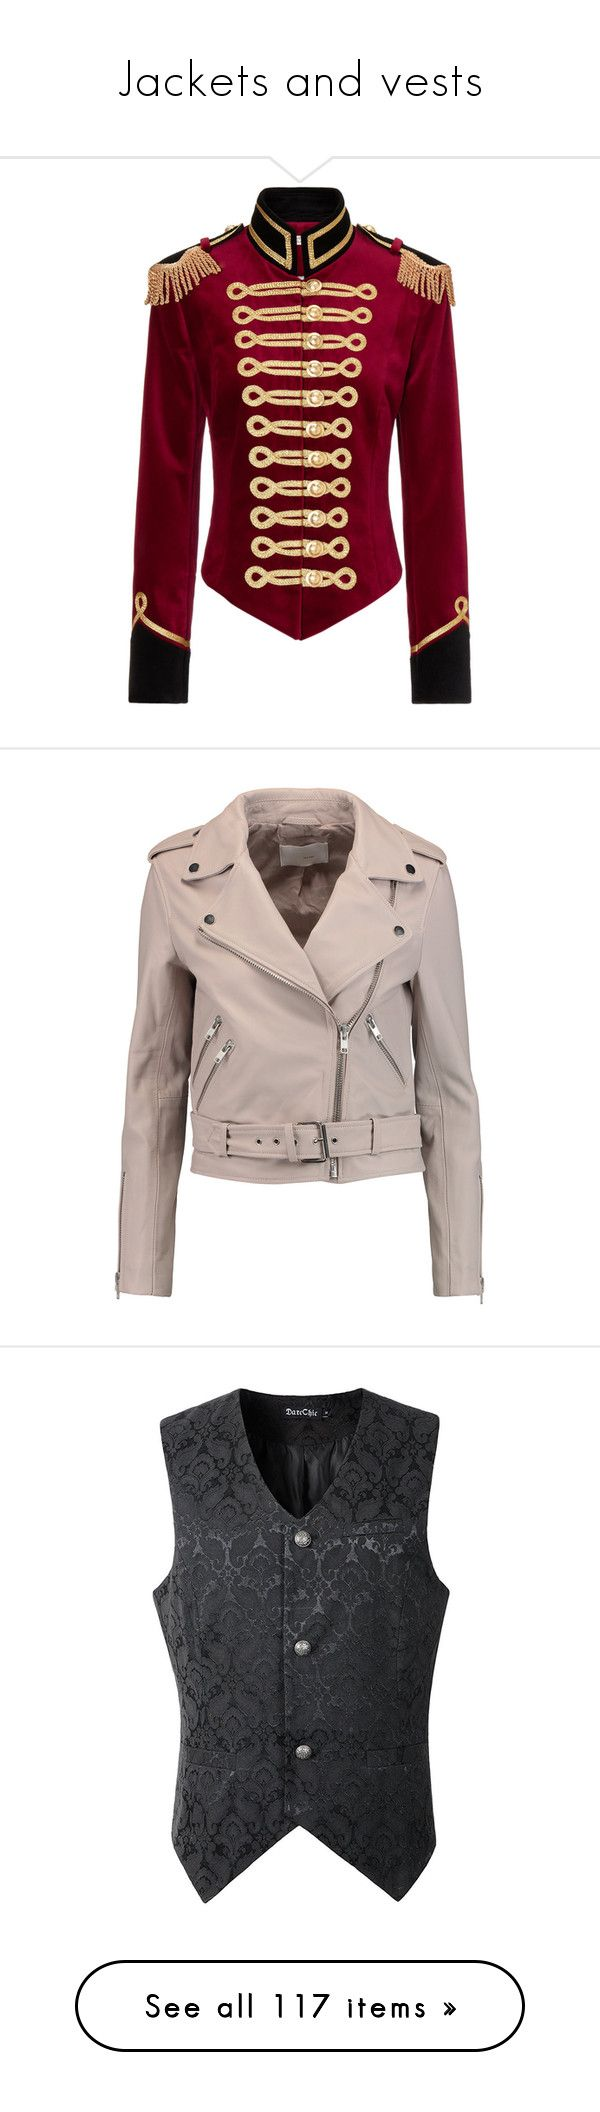 """Jackets and vests"" by felicitywest on Polyvore featuring outerwear, jackets, coats, tops, military field jacket, military inspired jacket, vintage military jacket, vintage jackets, retro jackets and blush"